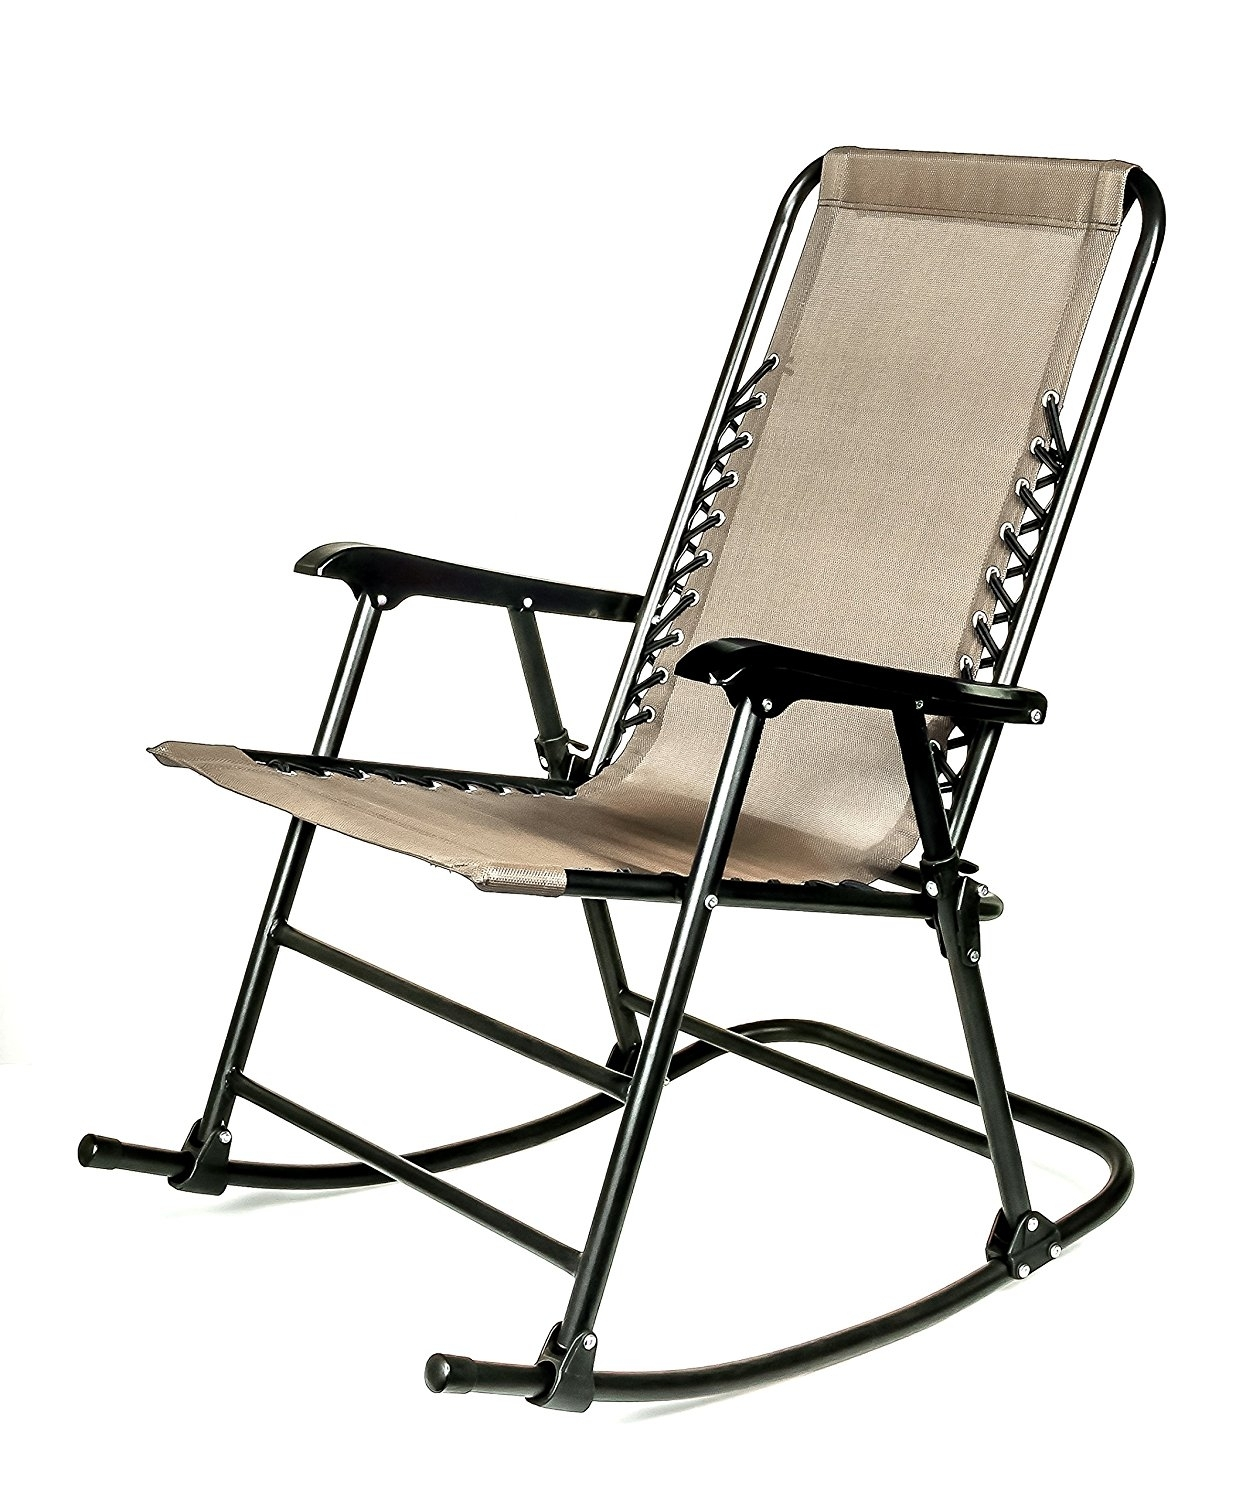 Stunning Folding Rocking Chair Amazon Images Ideas Chairs Com Camco Intended For Amazon Rocking Chairs (View 8 of 15)